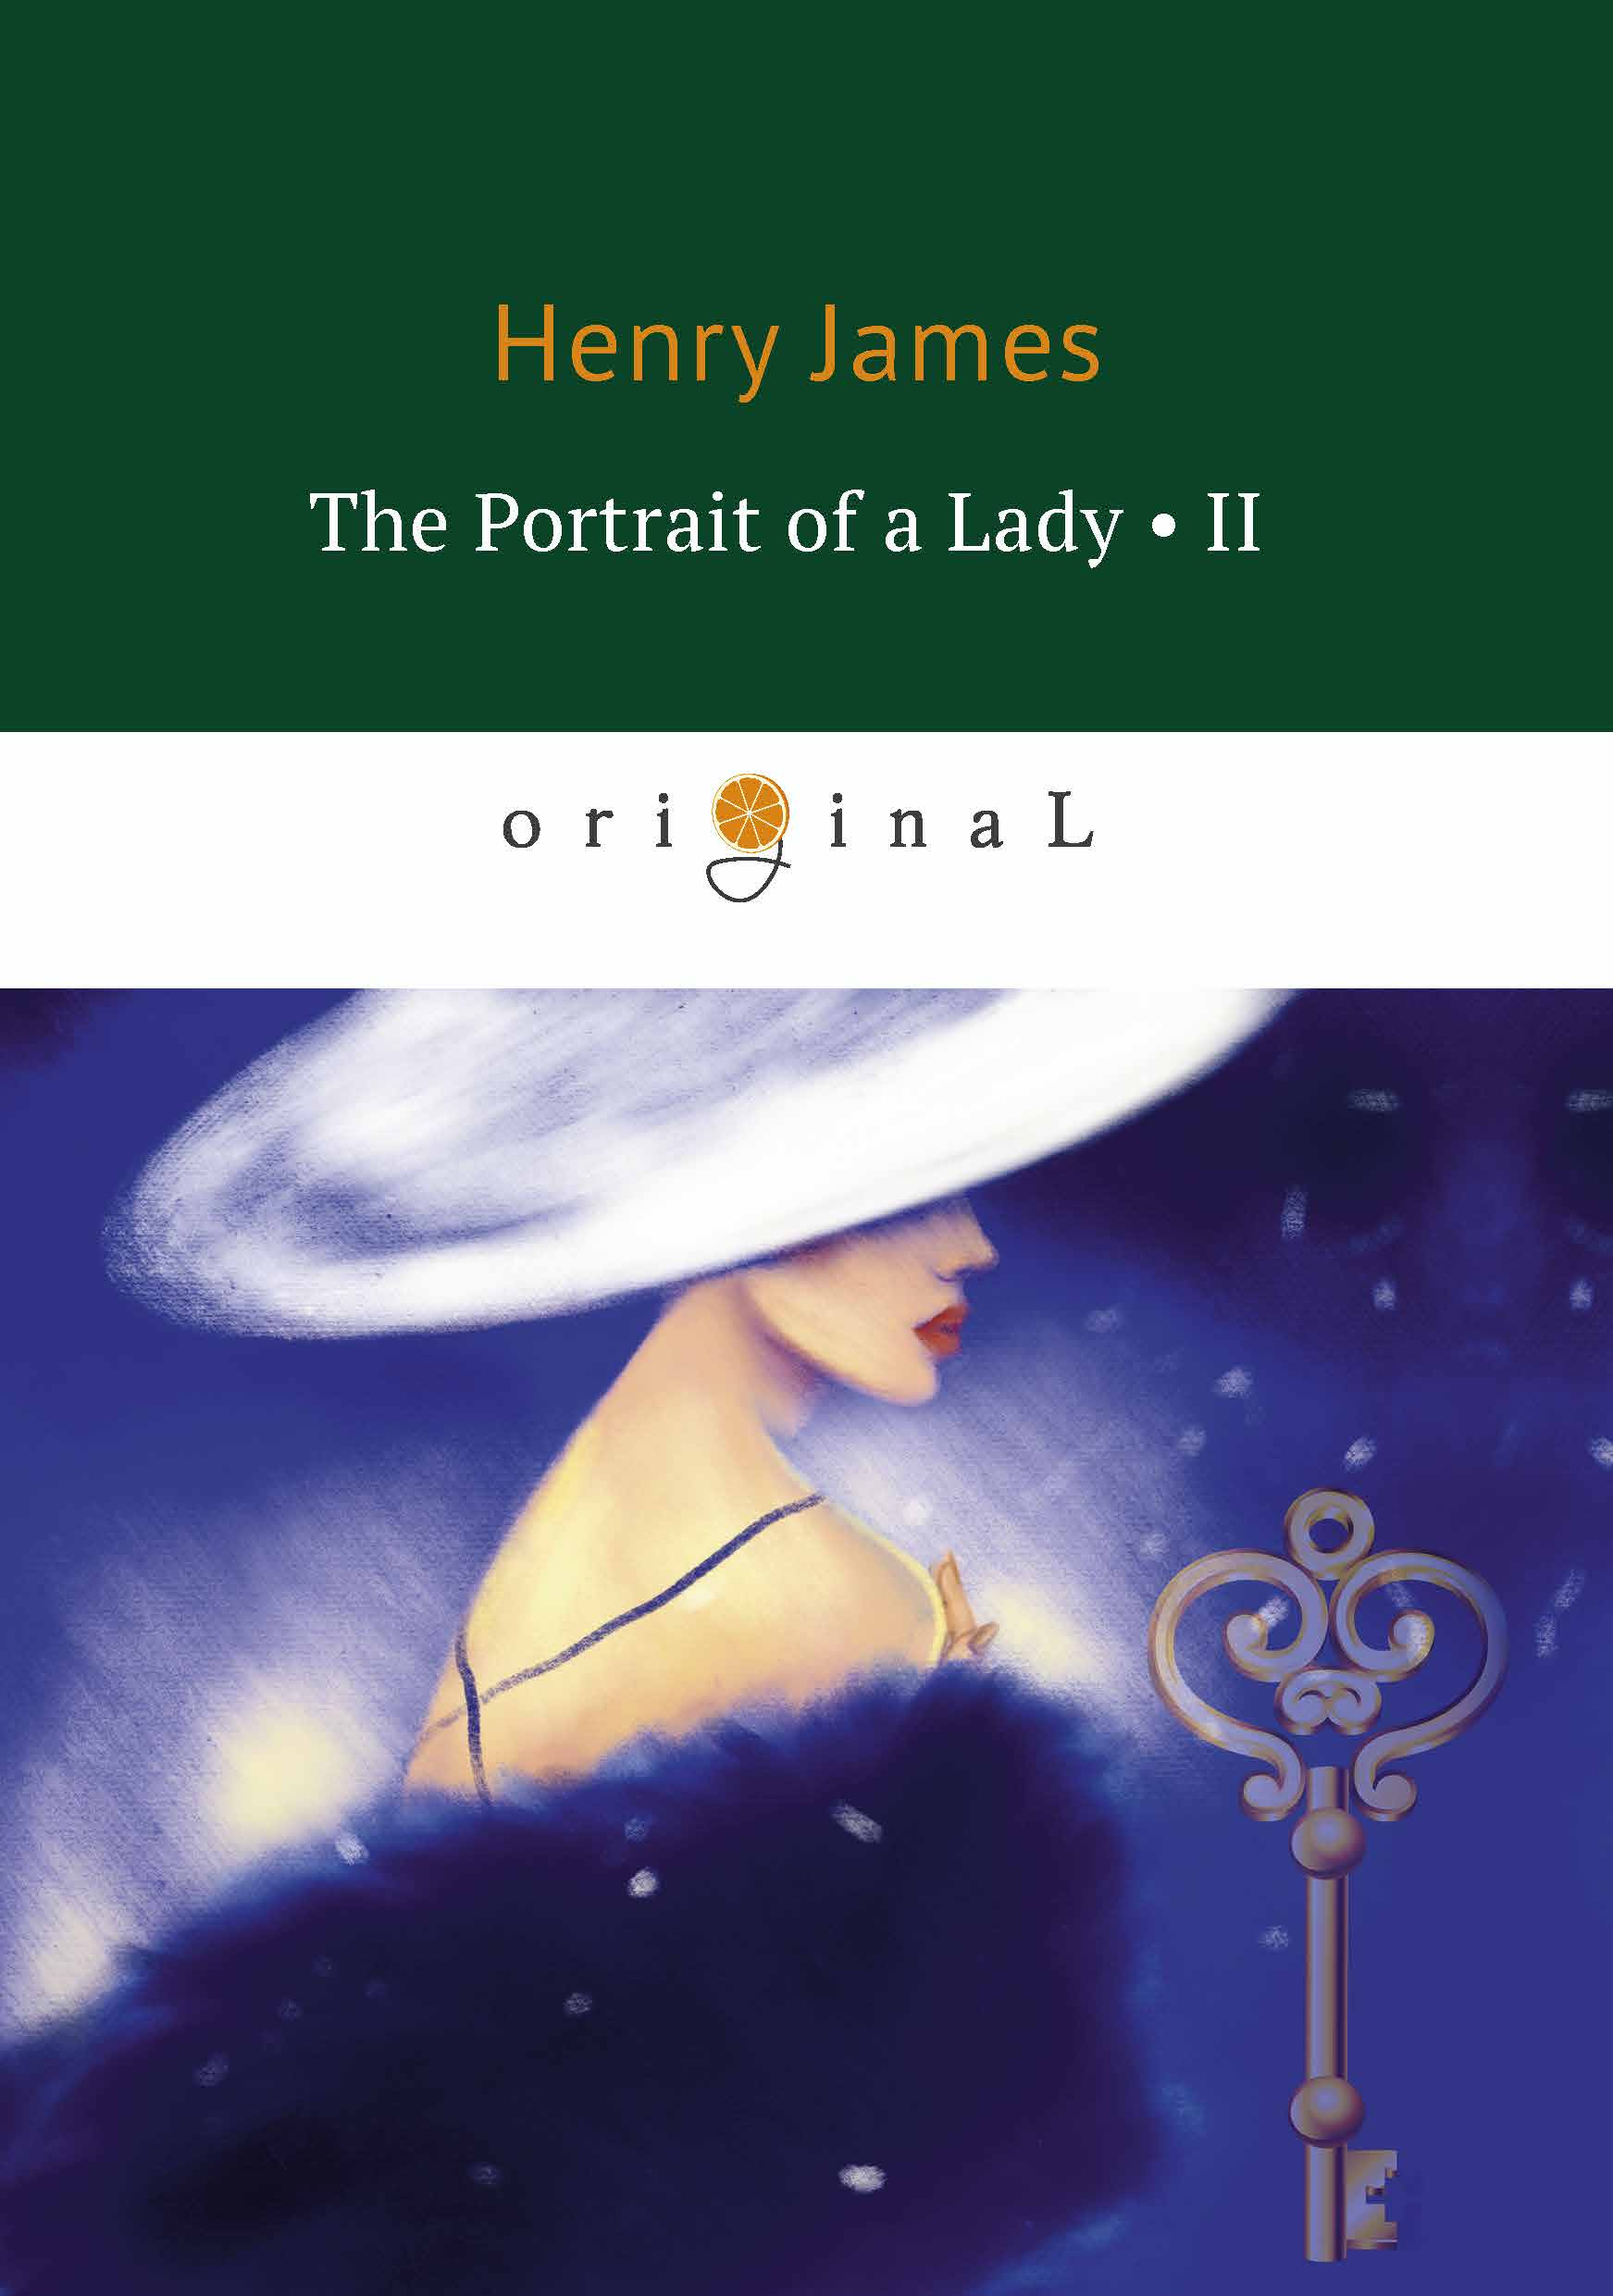 Henry James The Portrait of a Lady II storm 47296 b